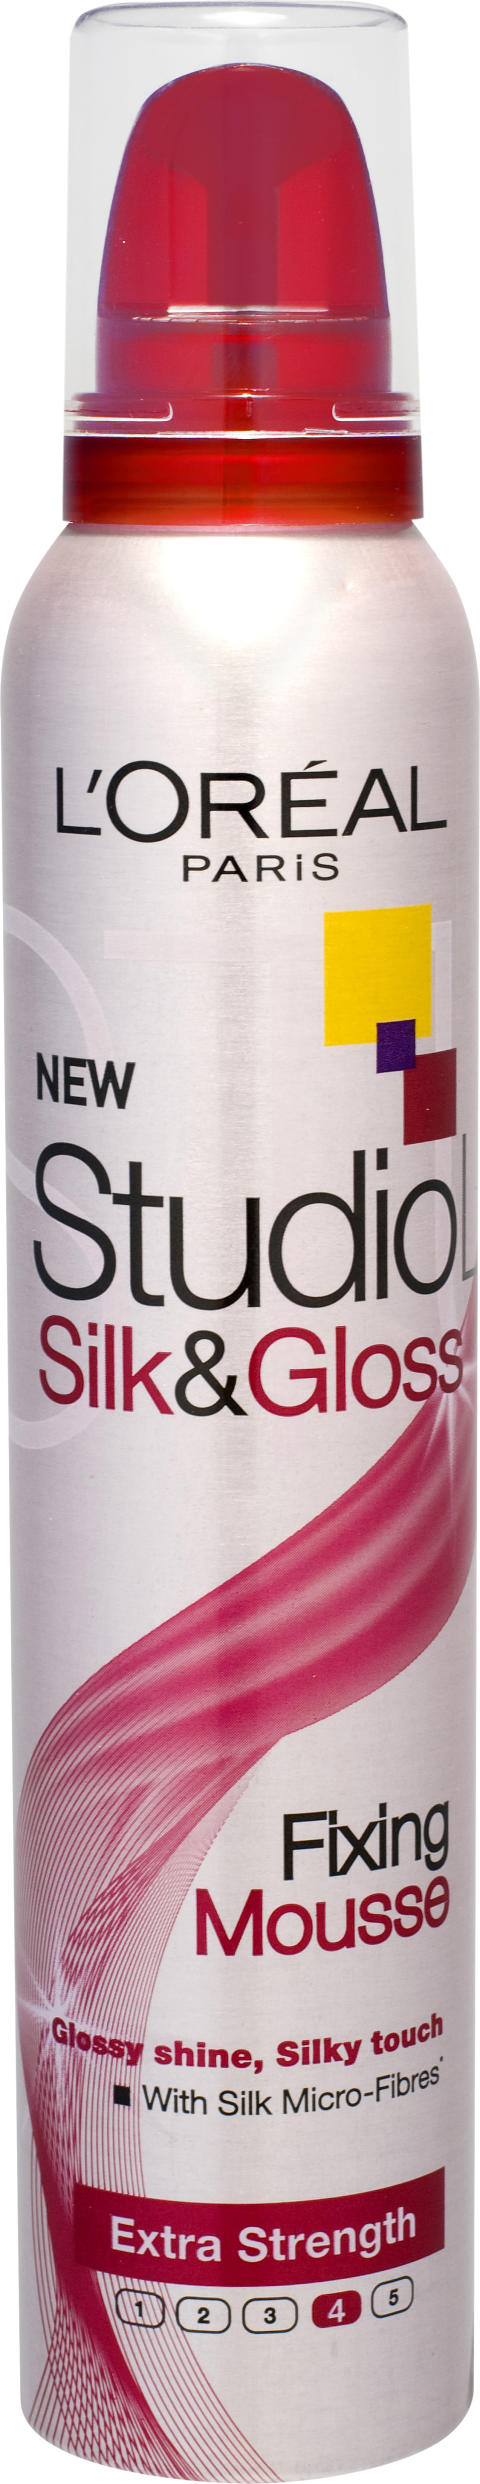 Studio Line Silk & Gloss Fixing Mousse